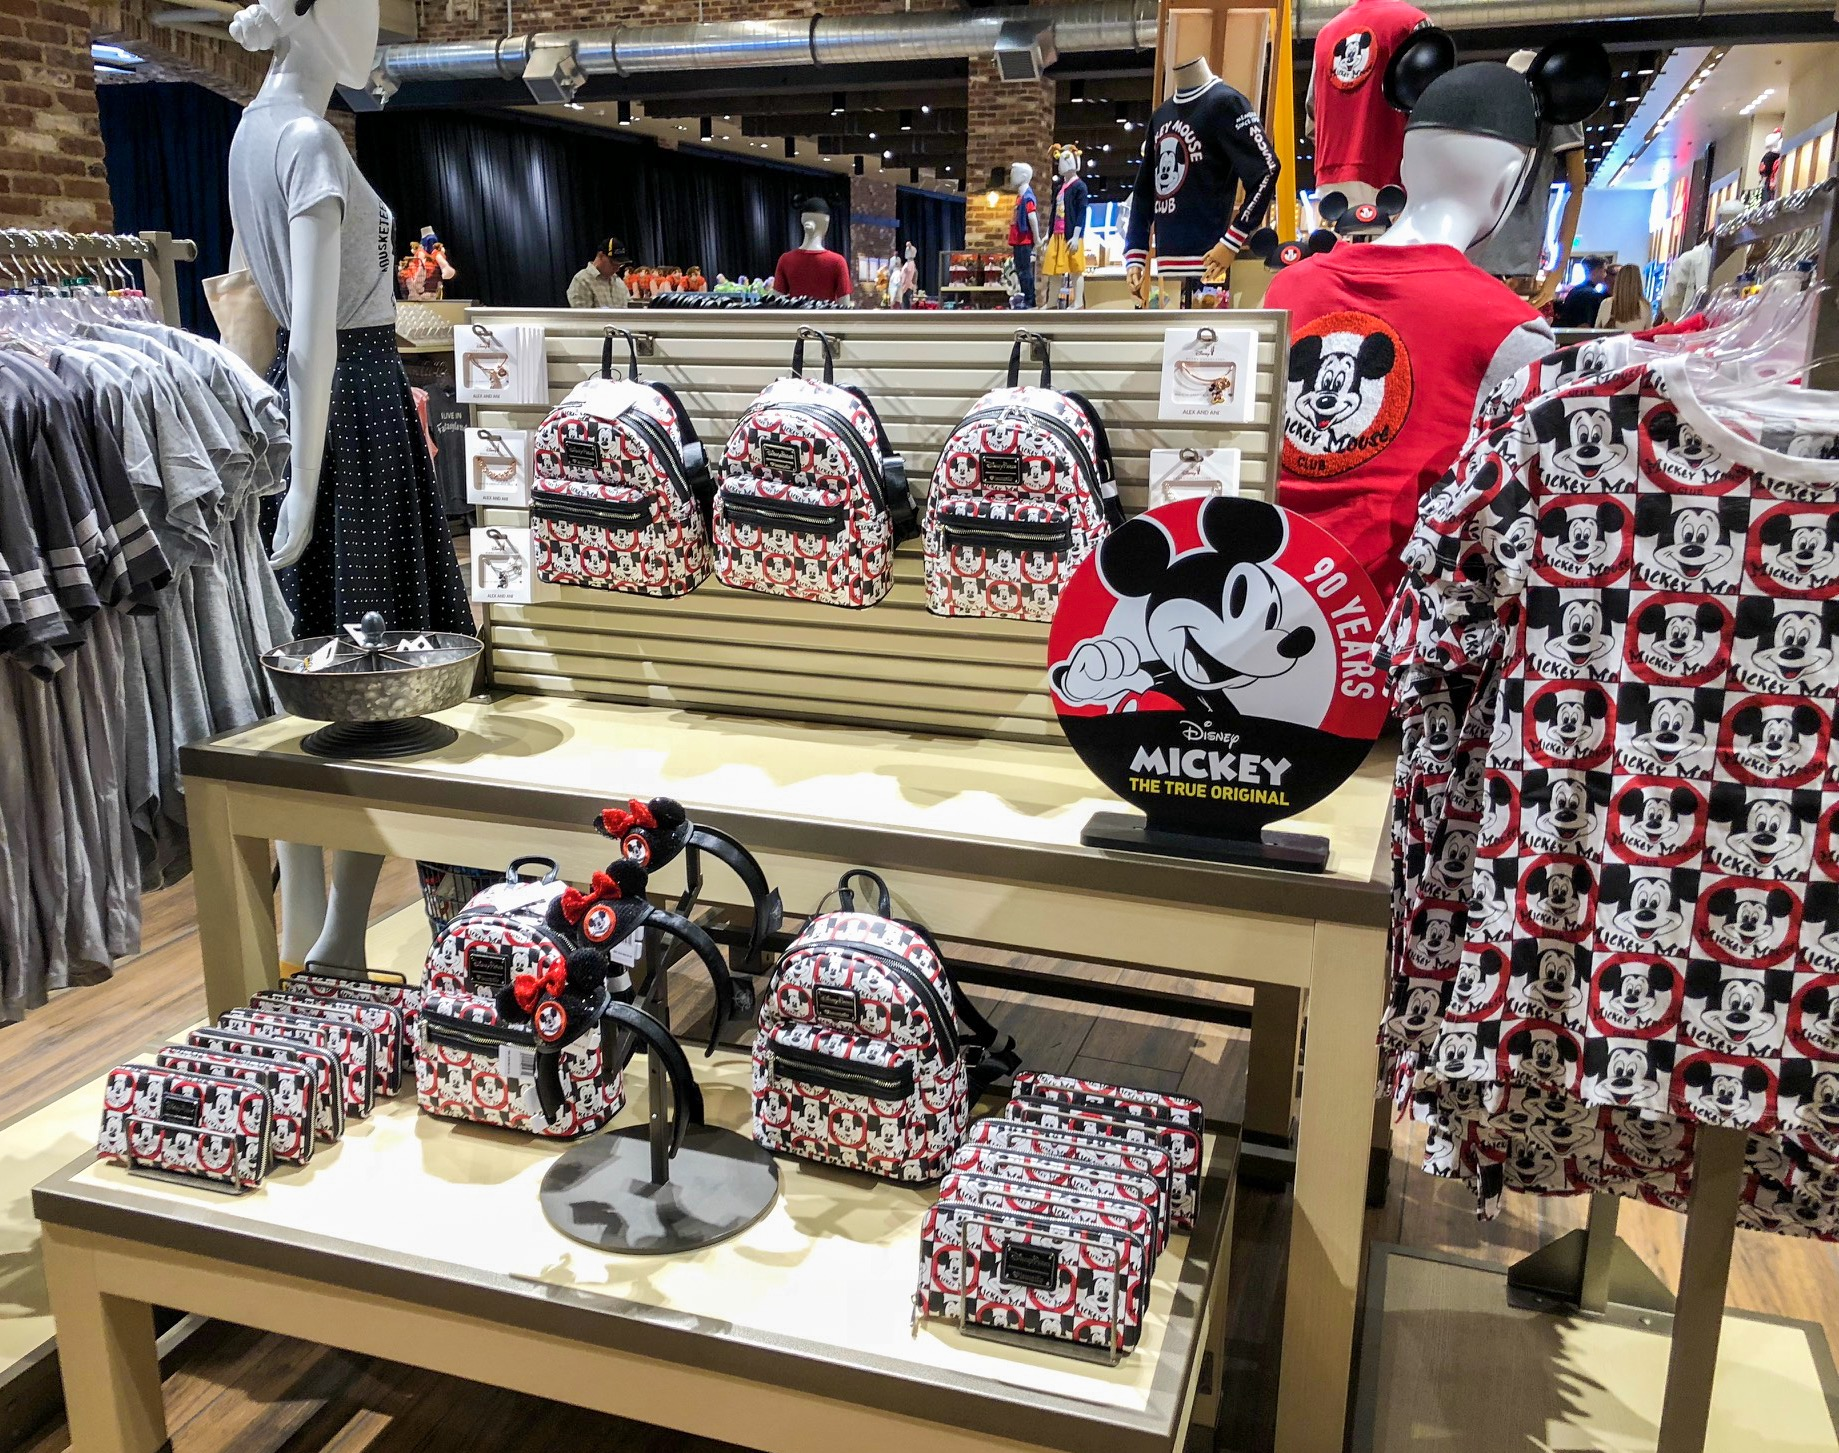 First look new mickey mouse club collection arrives at world of disney in disney springs the - Disney store mickey mouse ...